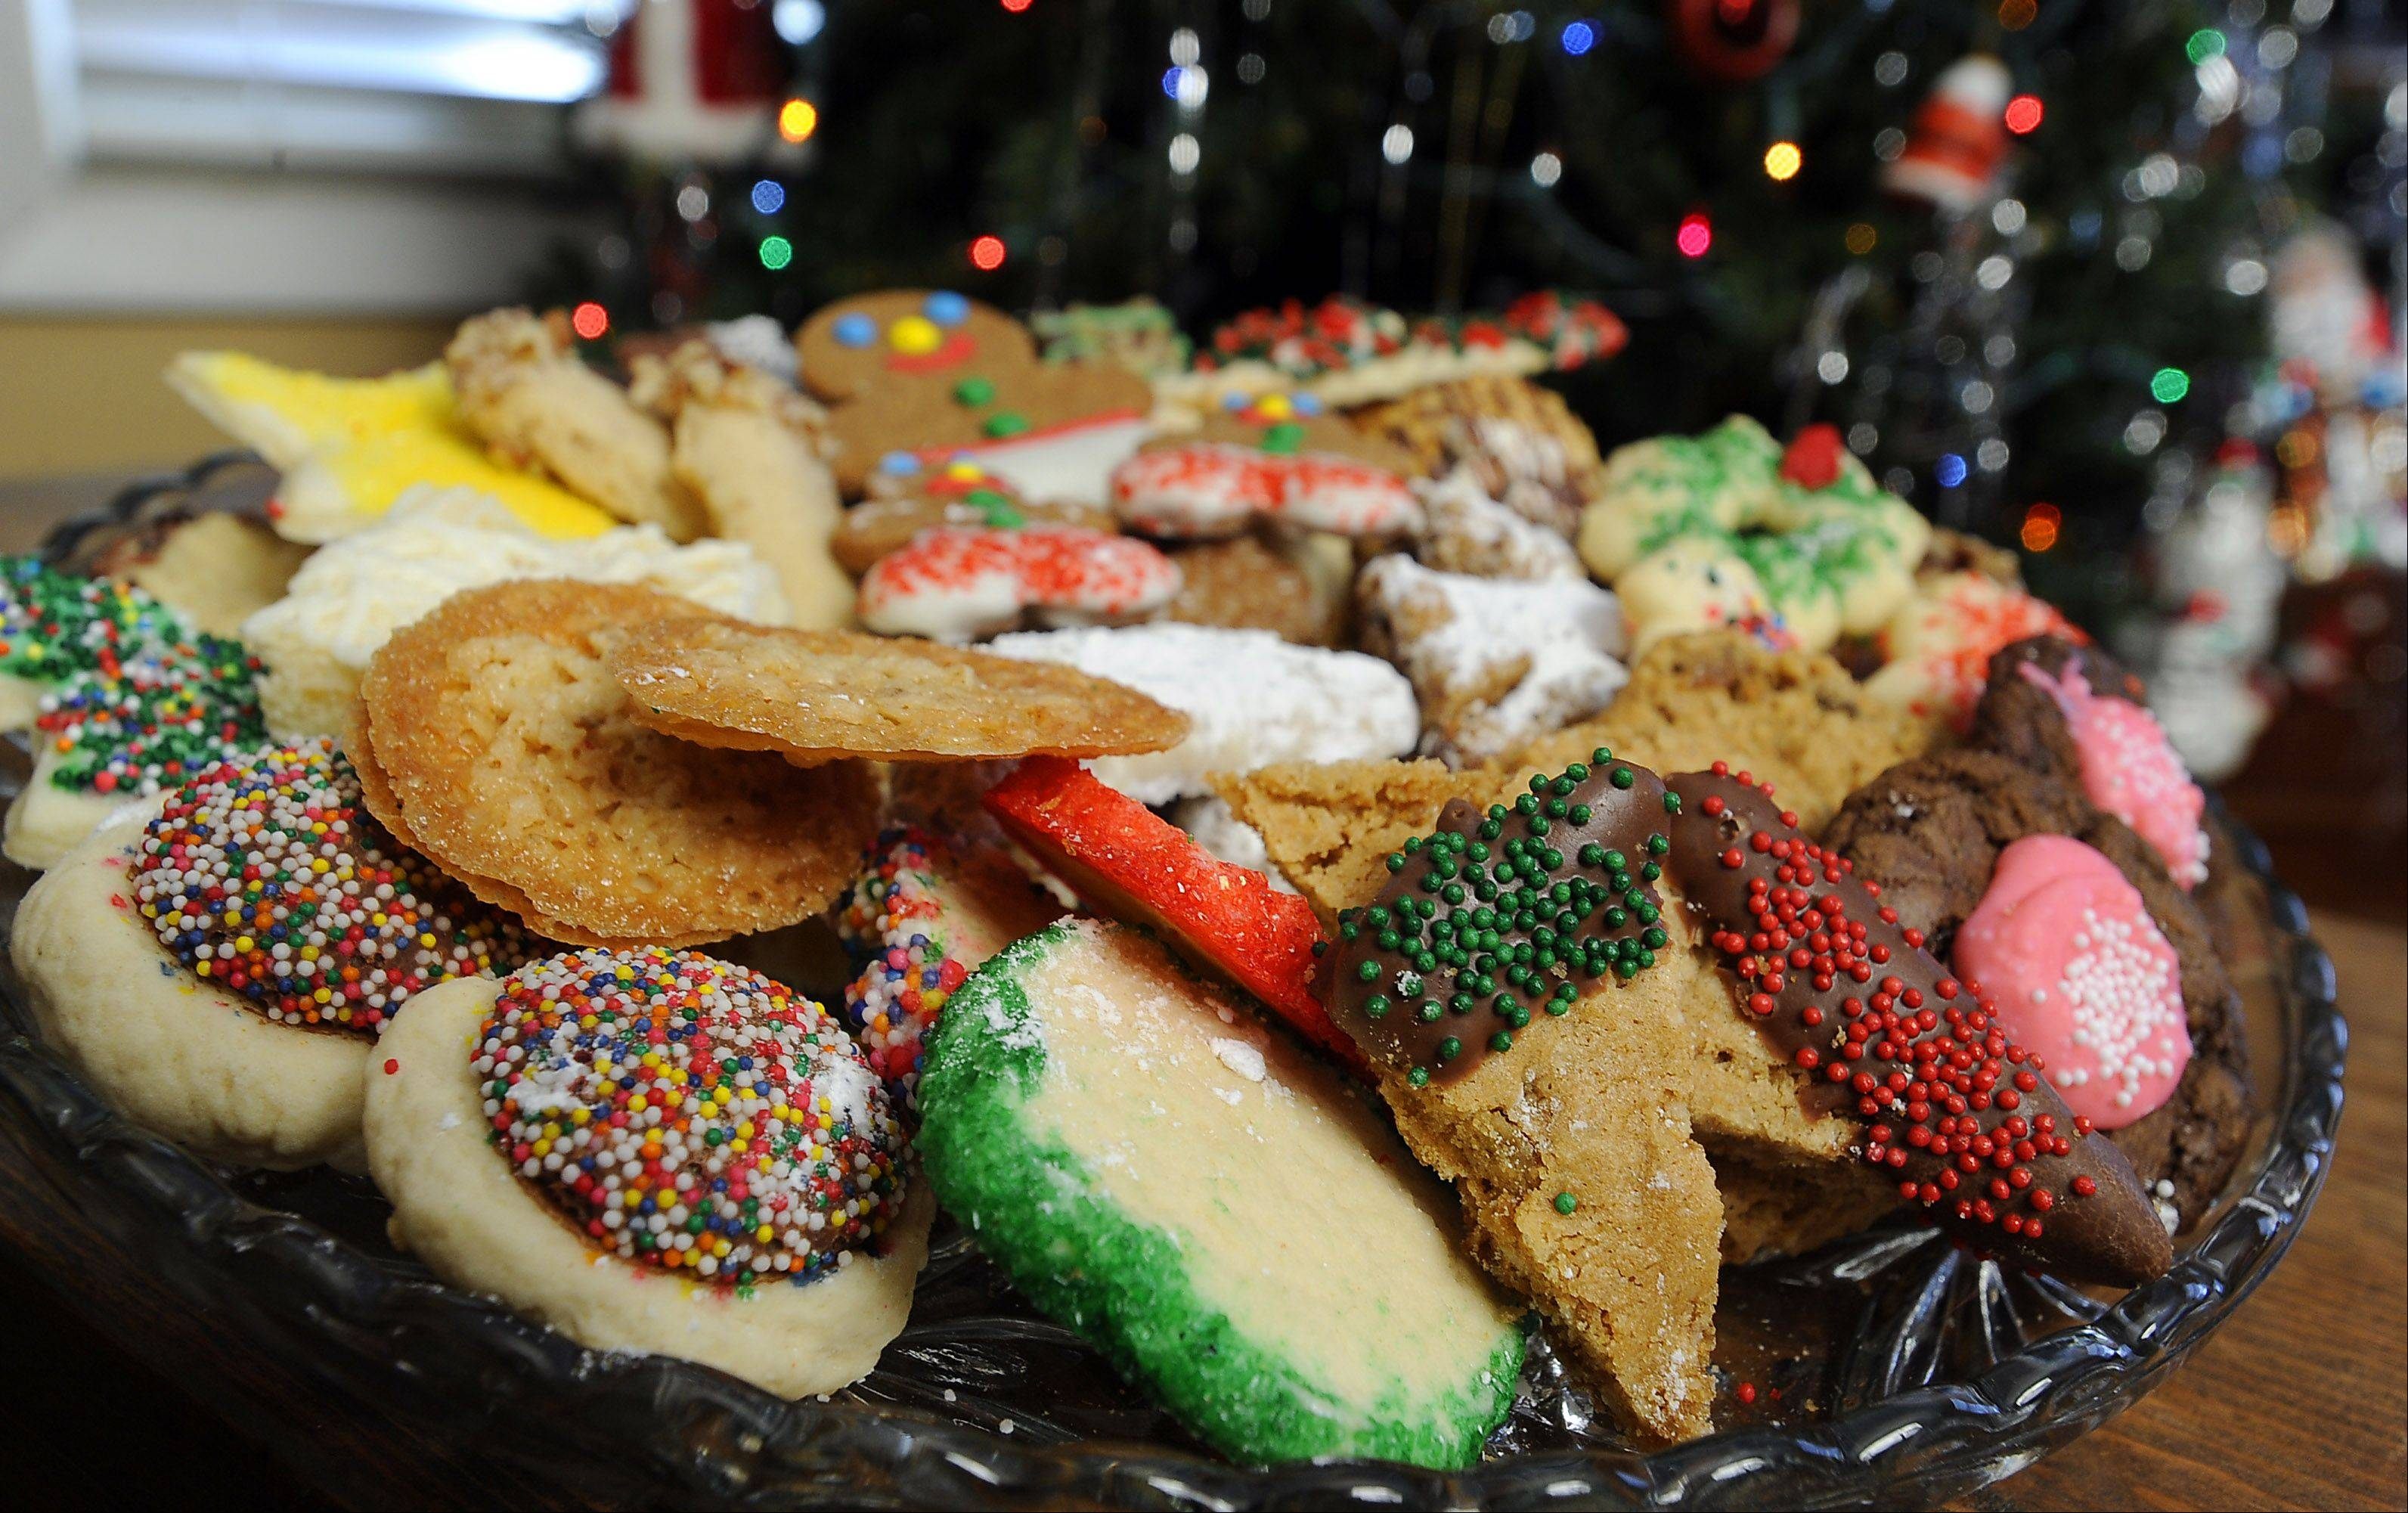 The kitchen of Laverne Hall�s Elk Grove Village home overflows with cookies this time of year. She creates lavish cookie trays to give to family and friends.